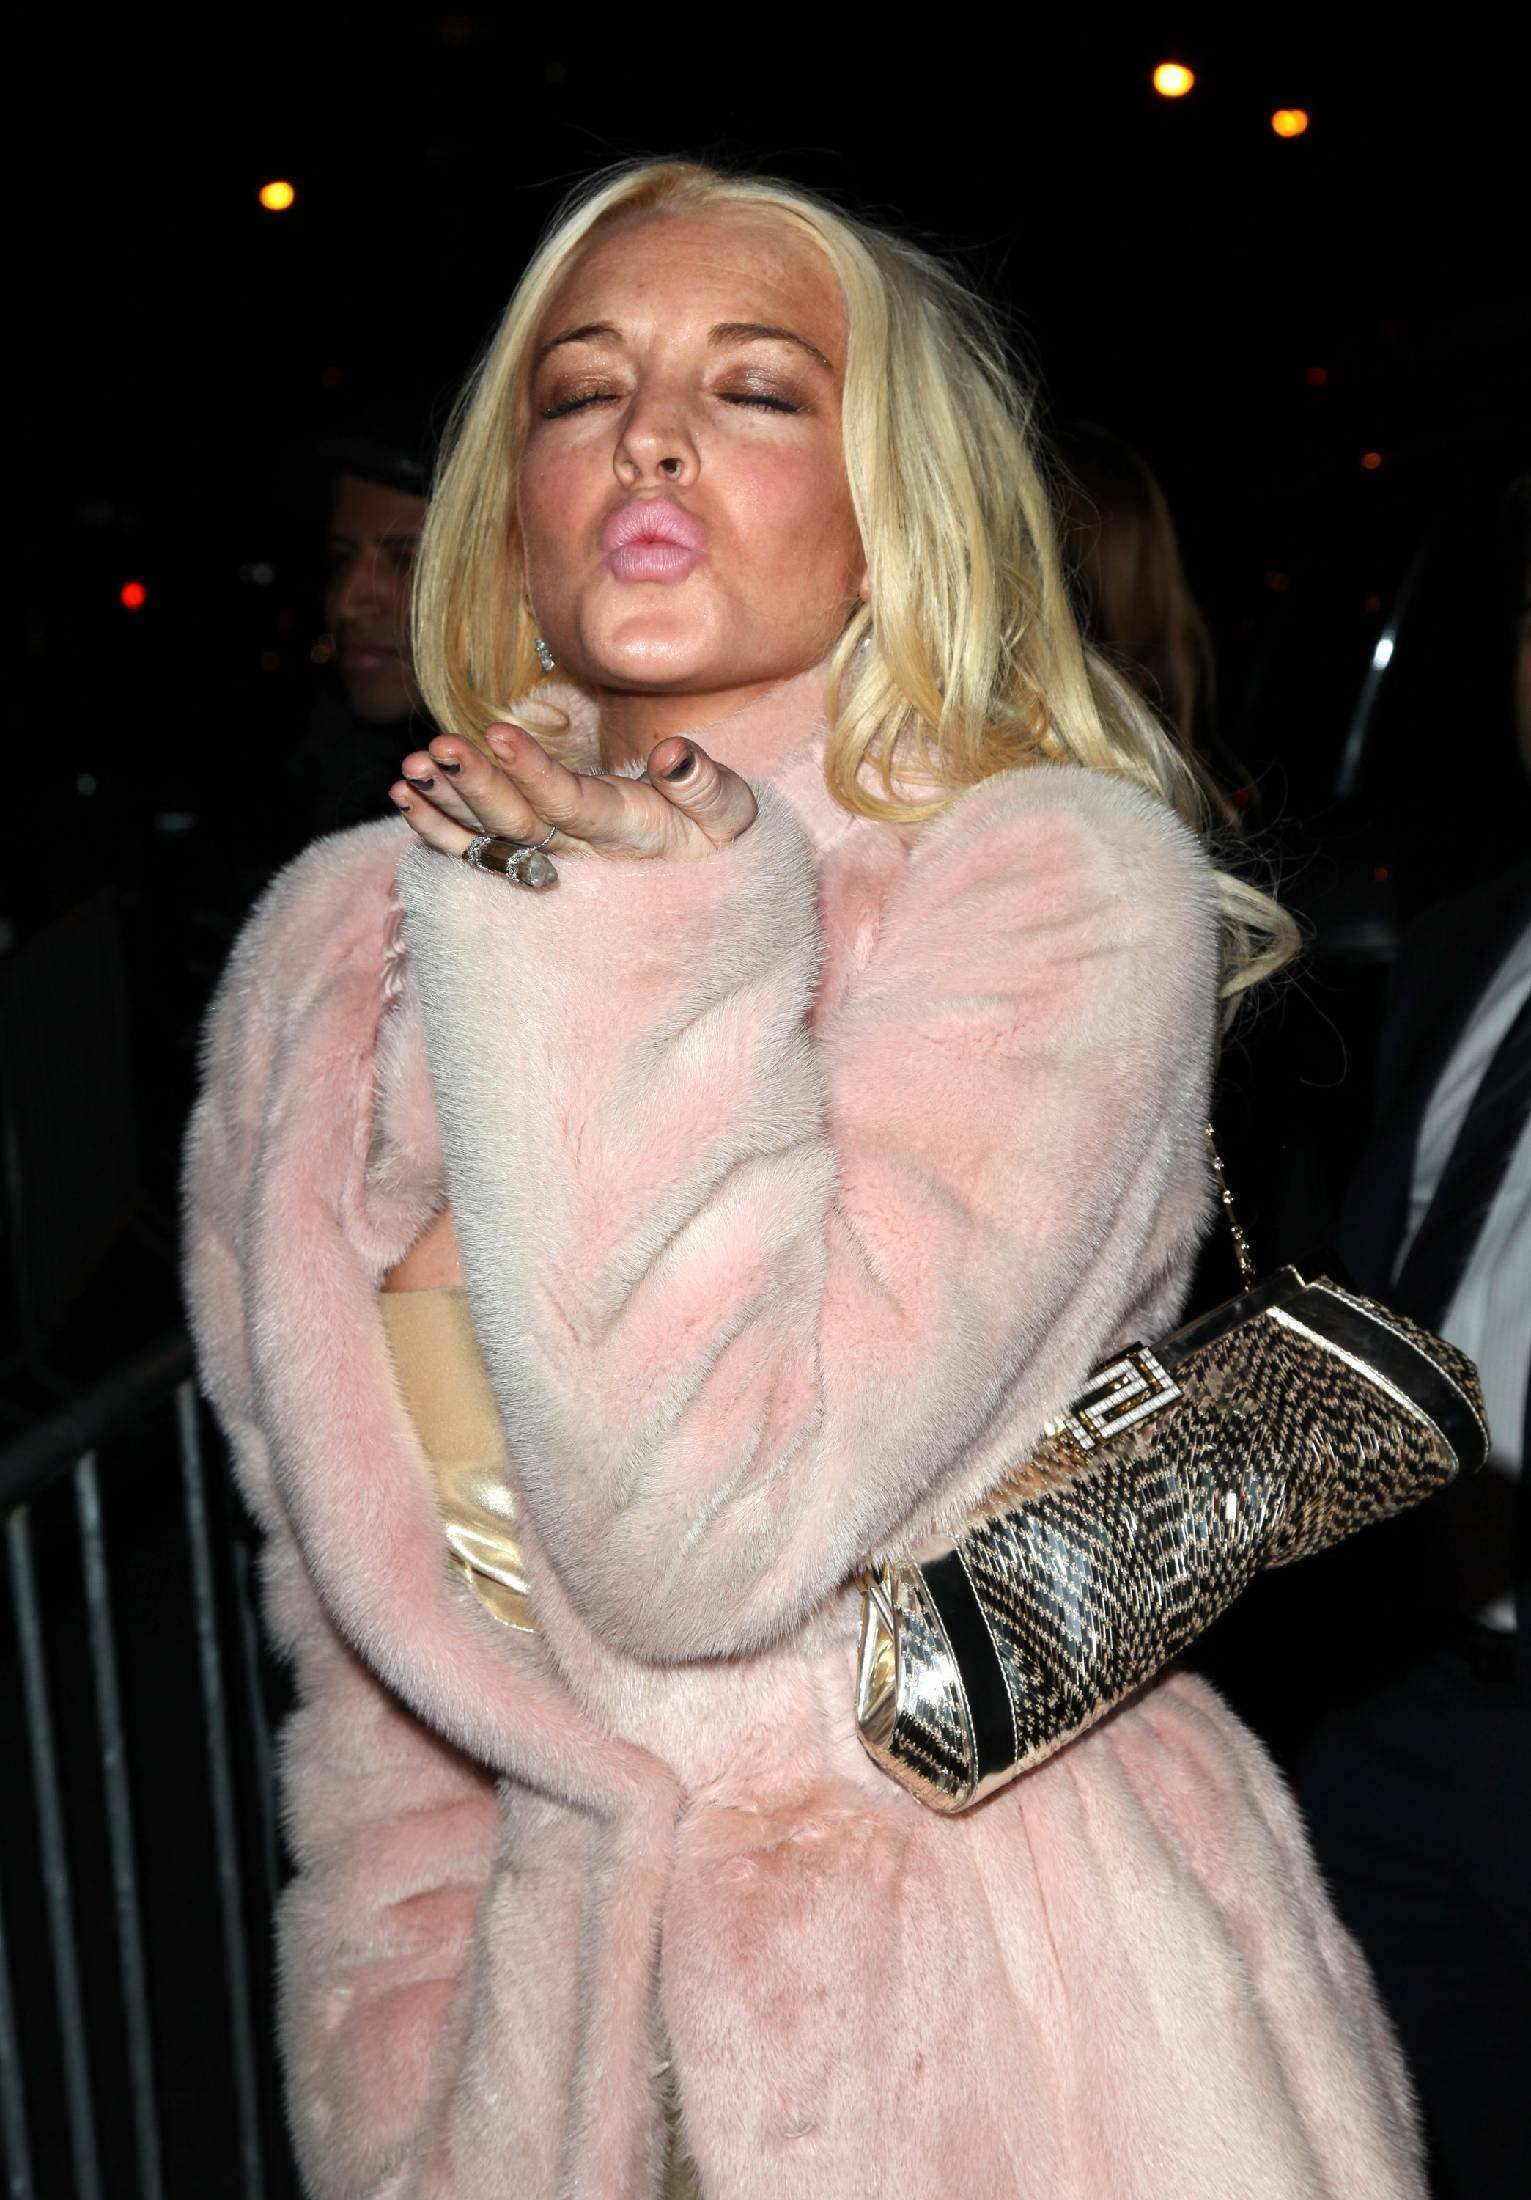 68560_Lindsay_Lohan_arrives_at_the_2009_Whitney_Museum_Gala-9_123_549lo.jpg